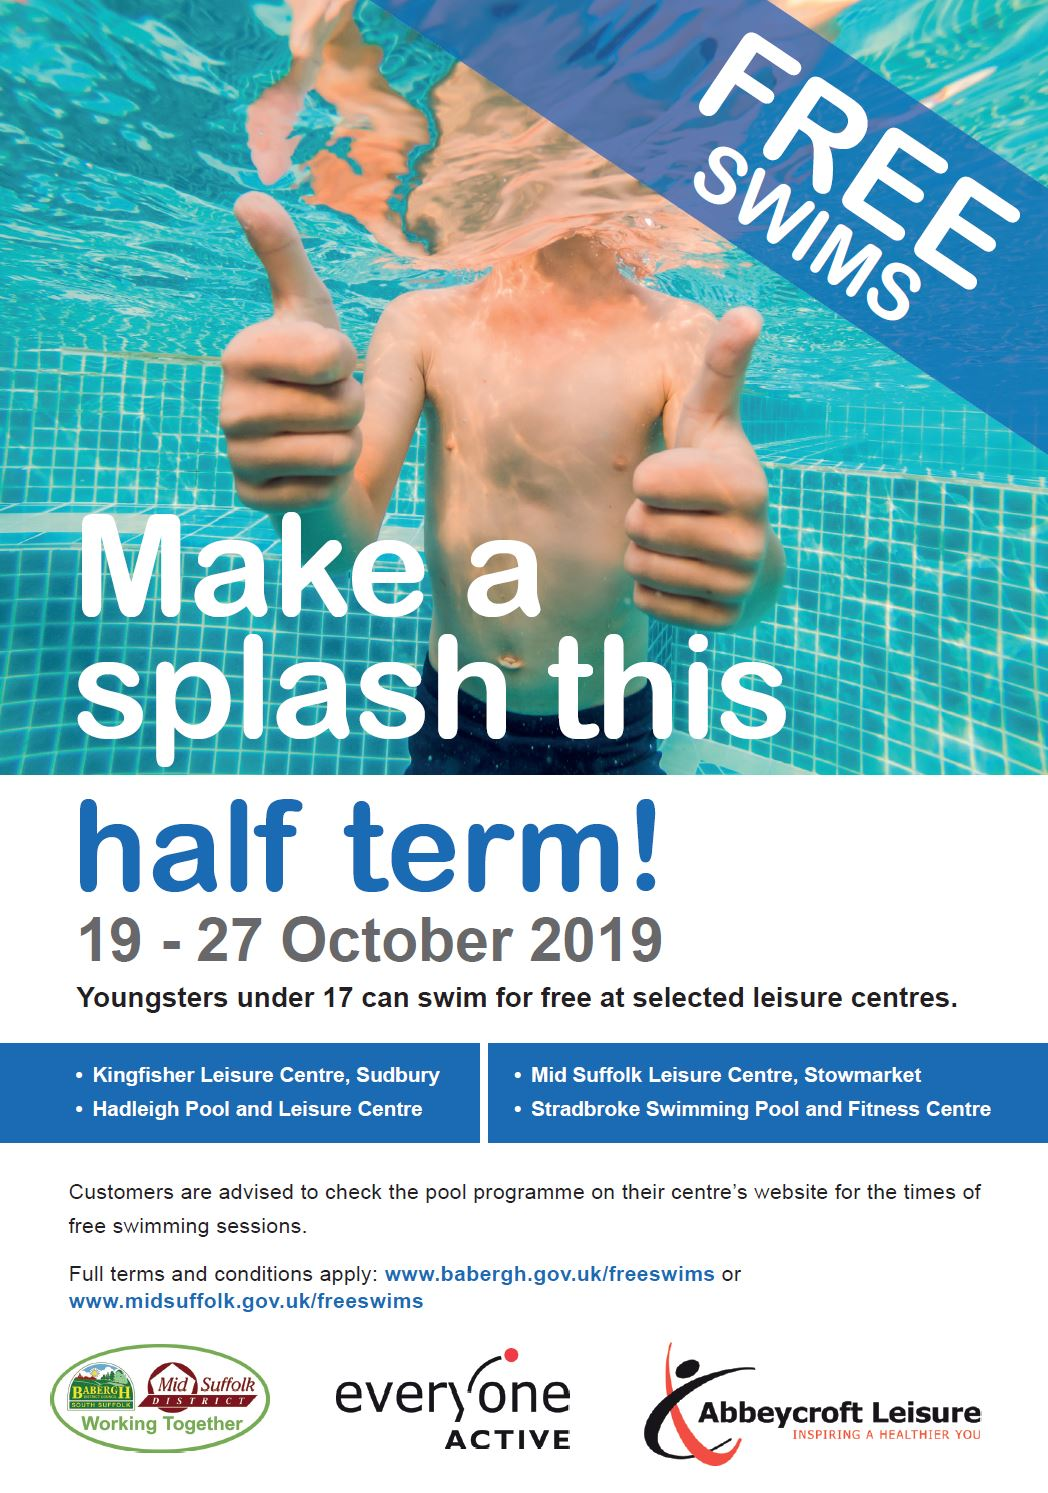 Free Swims to continue in October half term and Christmas Holidays